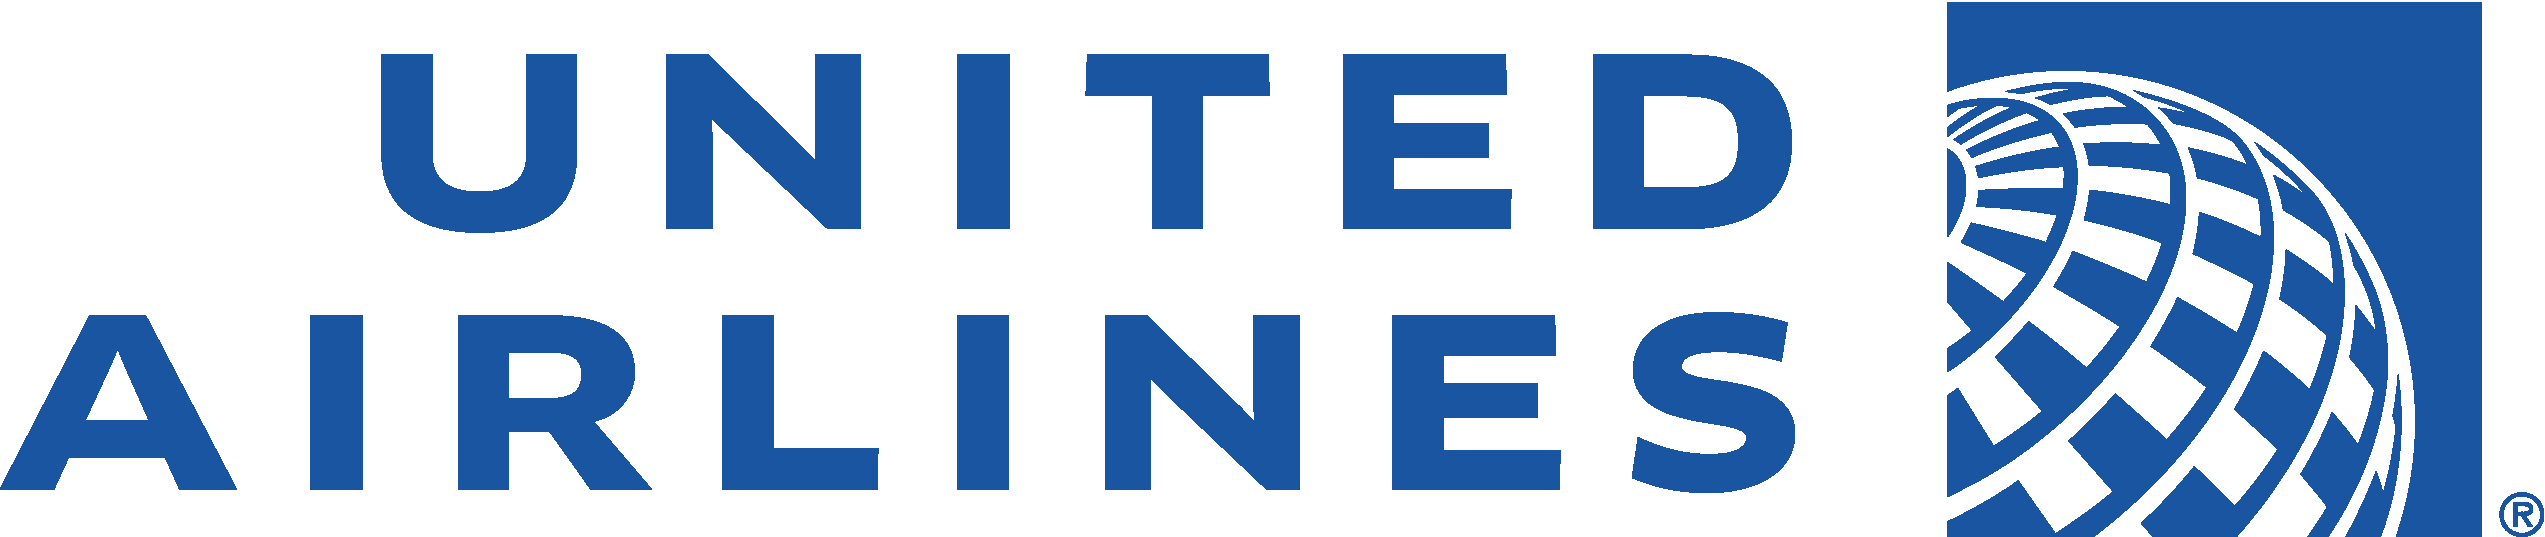 United Airlines Logo PNG - 176609